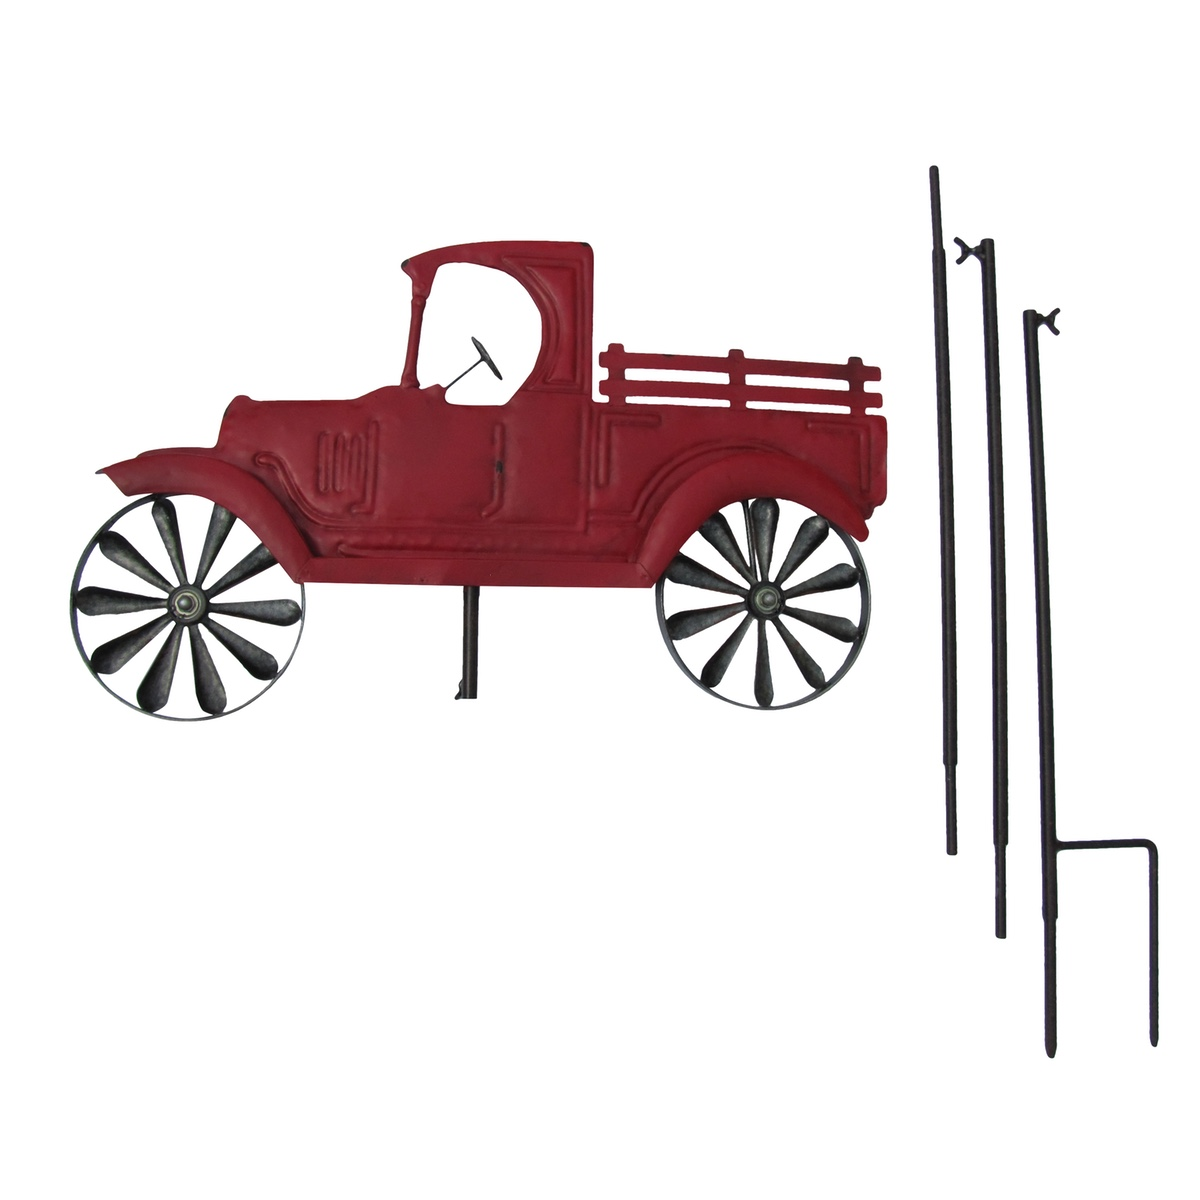 Farm Truck Wind Spinner Garden Stake/Lawn Ornament/Yard Art Outdoor Home Decor